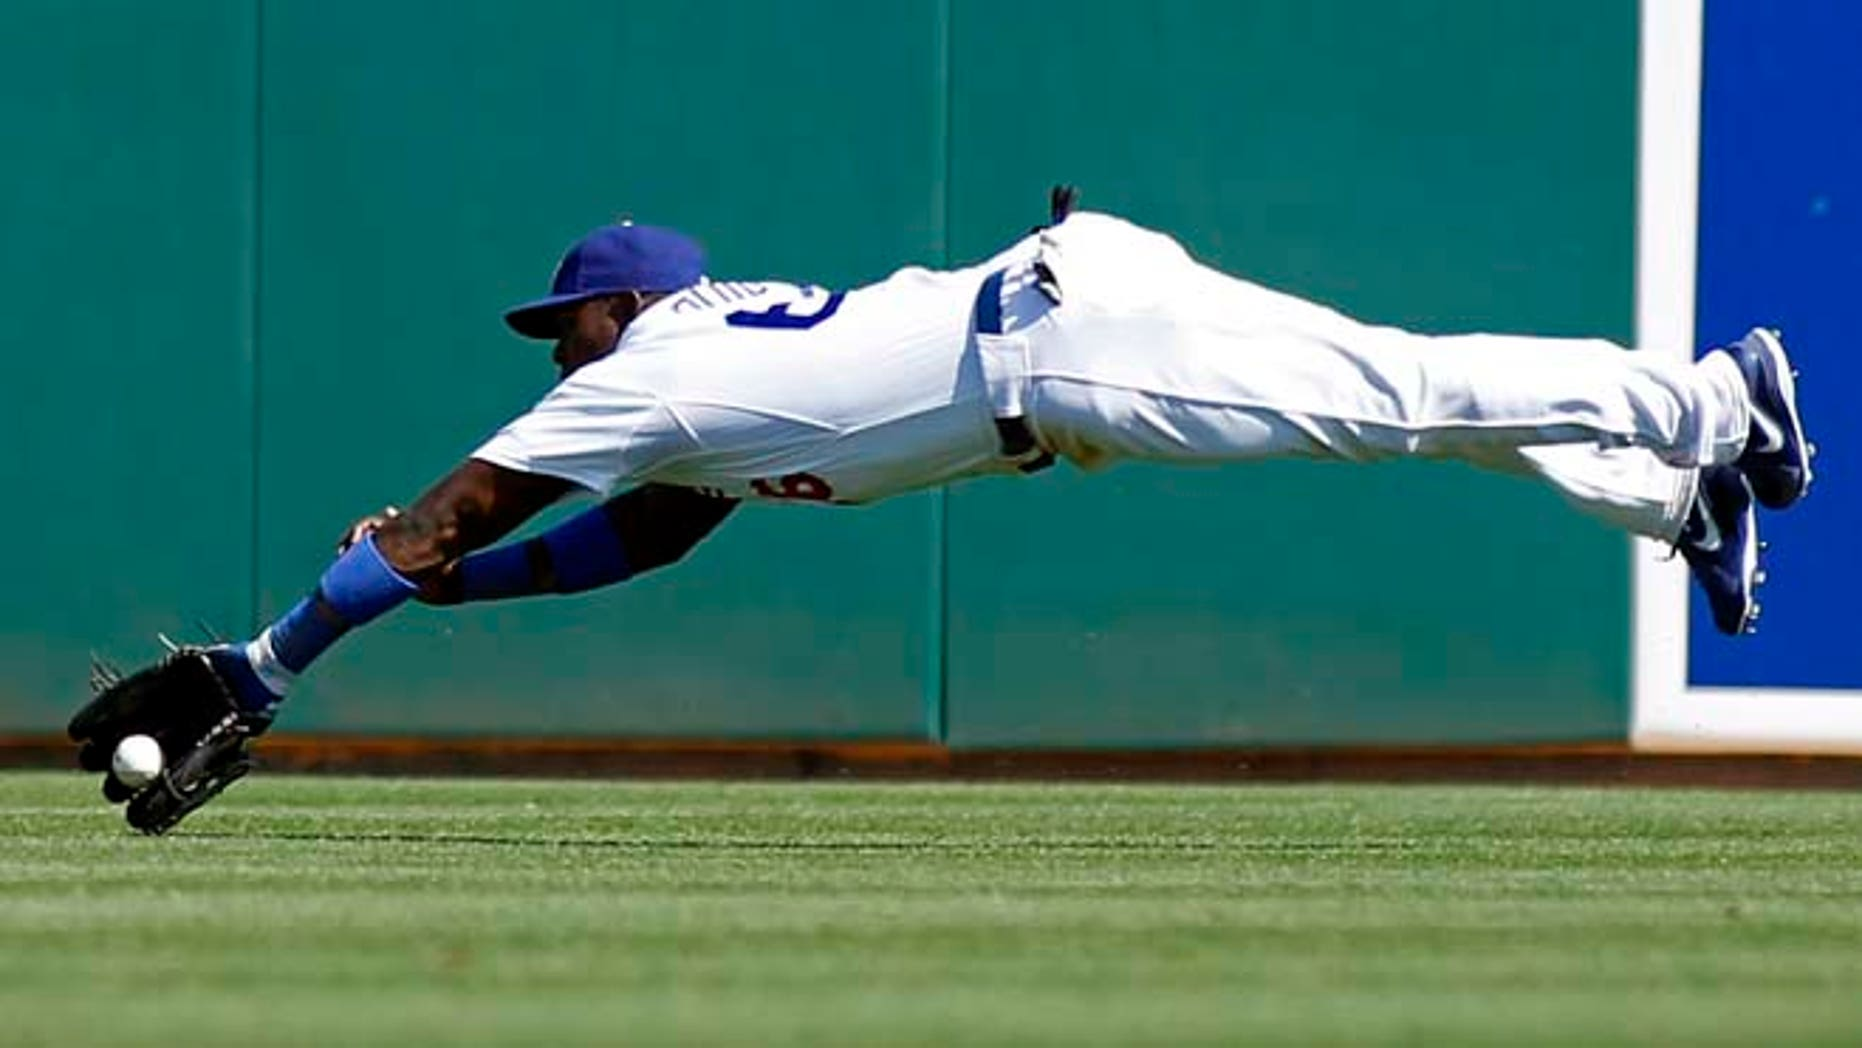 Los Angeles Dodgers' all-star outfielder Yasiel Puig is one of a handful of Cuban defectors who have taken Major League Baseball by storm, prompting hopes that a recent relaxation in U.S.-Cuba relations could allow more superstar talent from the island nation to come stateside.